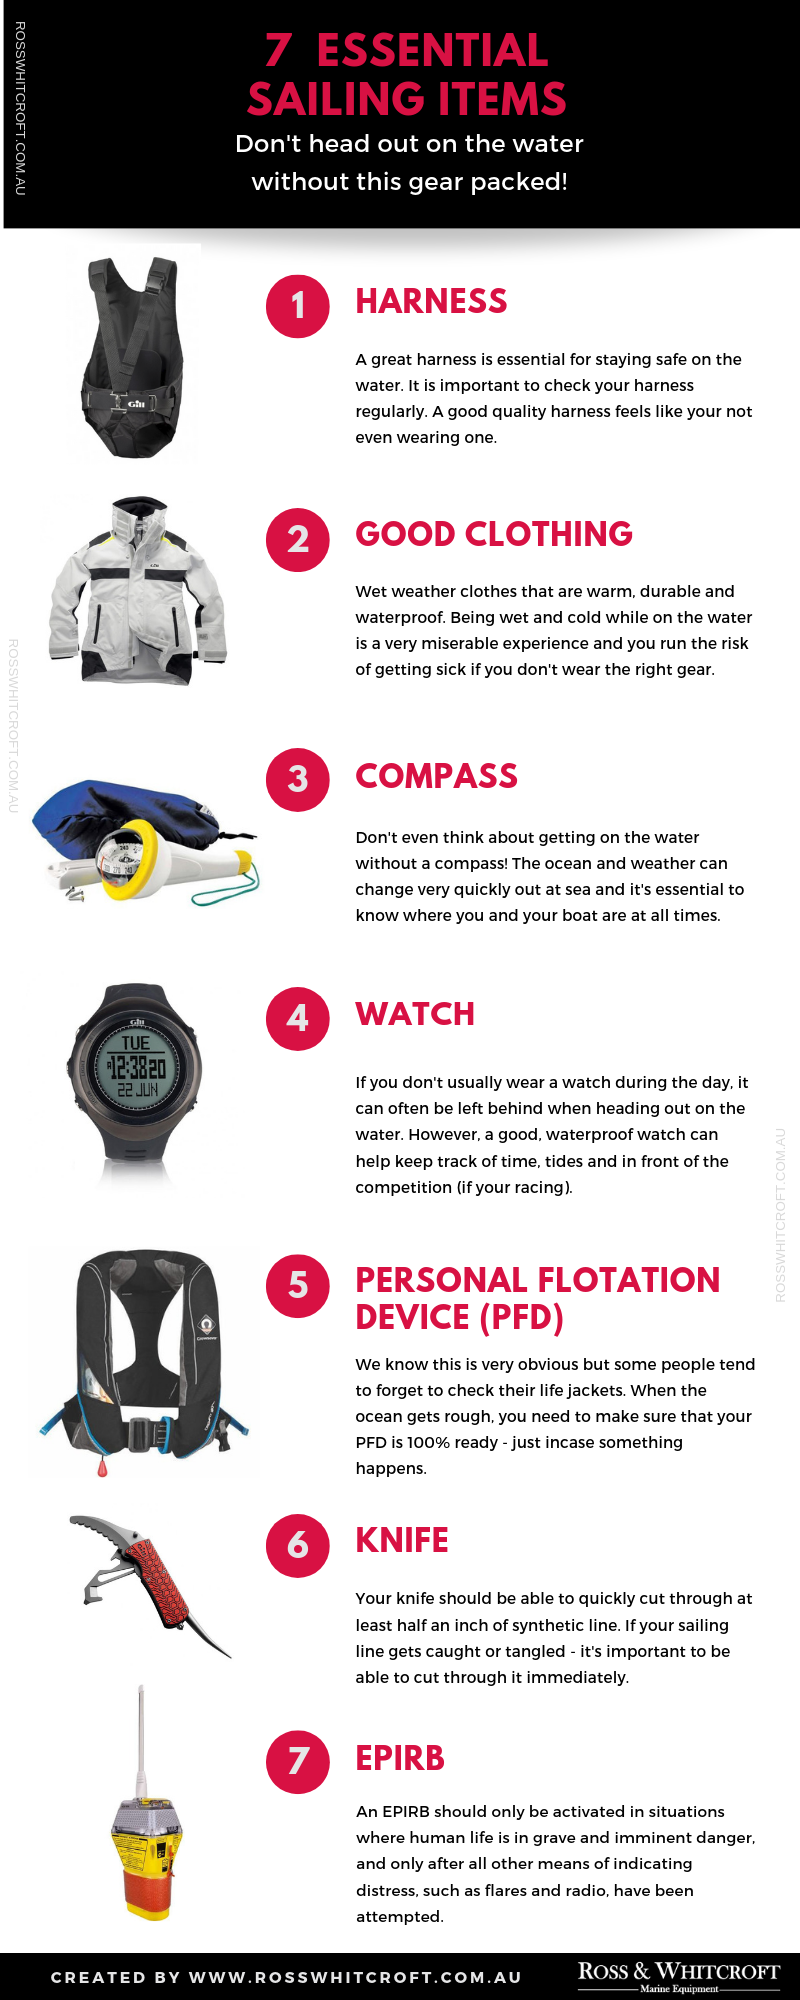 7 Essential Sailing Items (Infographic)